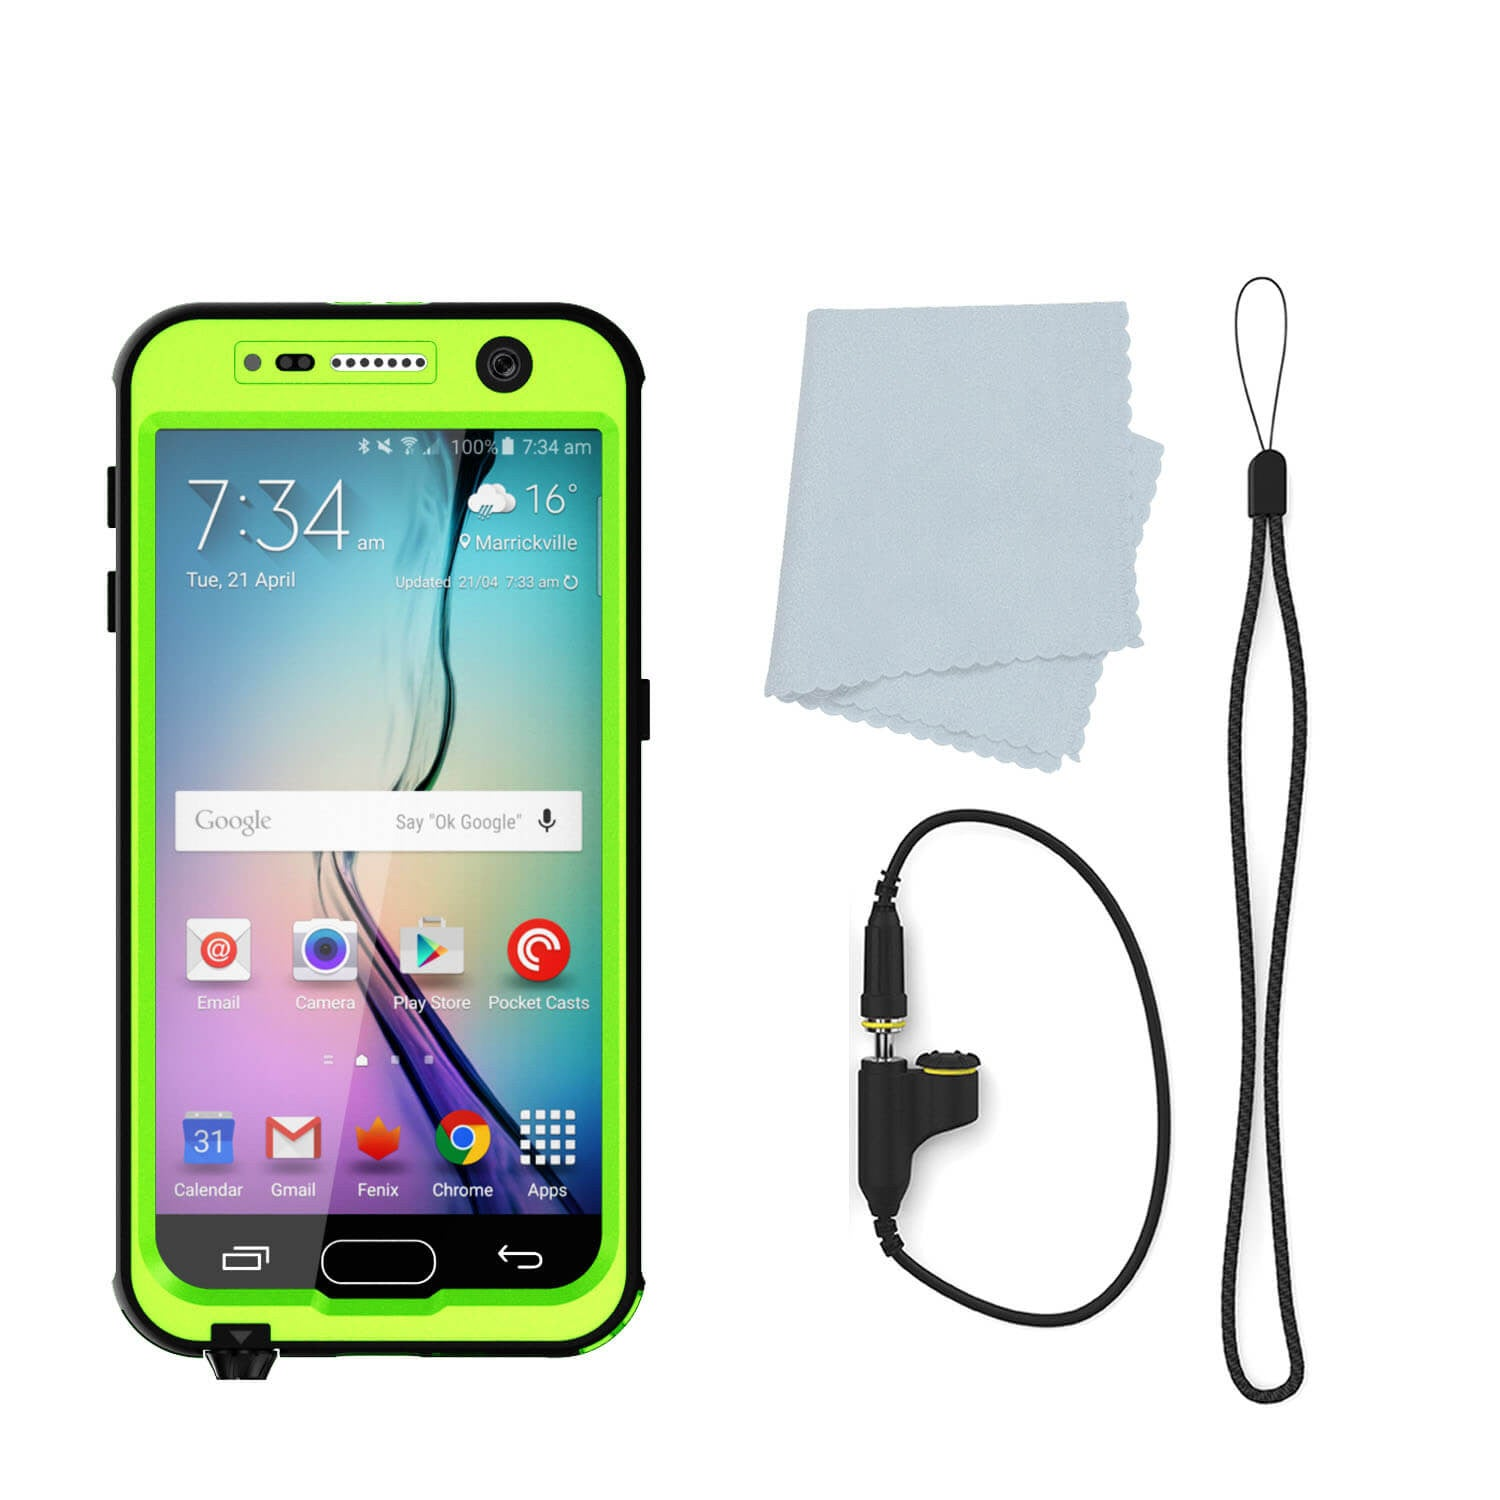 Galaxy S6 Waterproof Case PunkCase StudStar Light Green Thin 6.6ft Underwater IP68 Shock/Dirt Proof